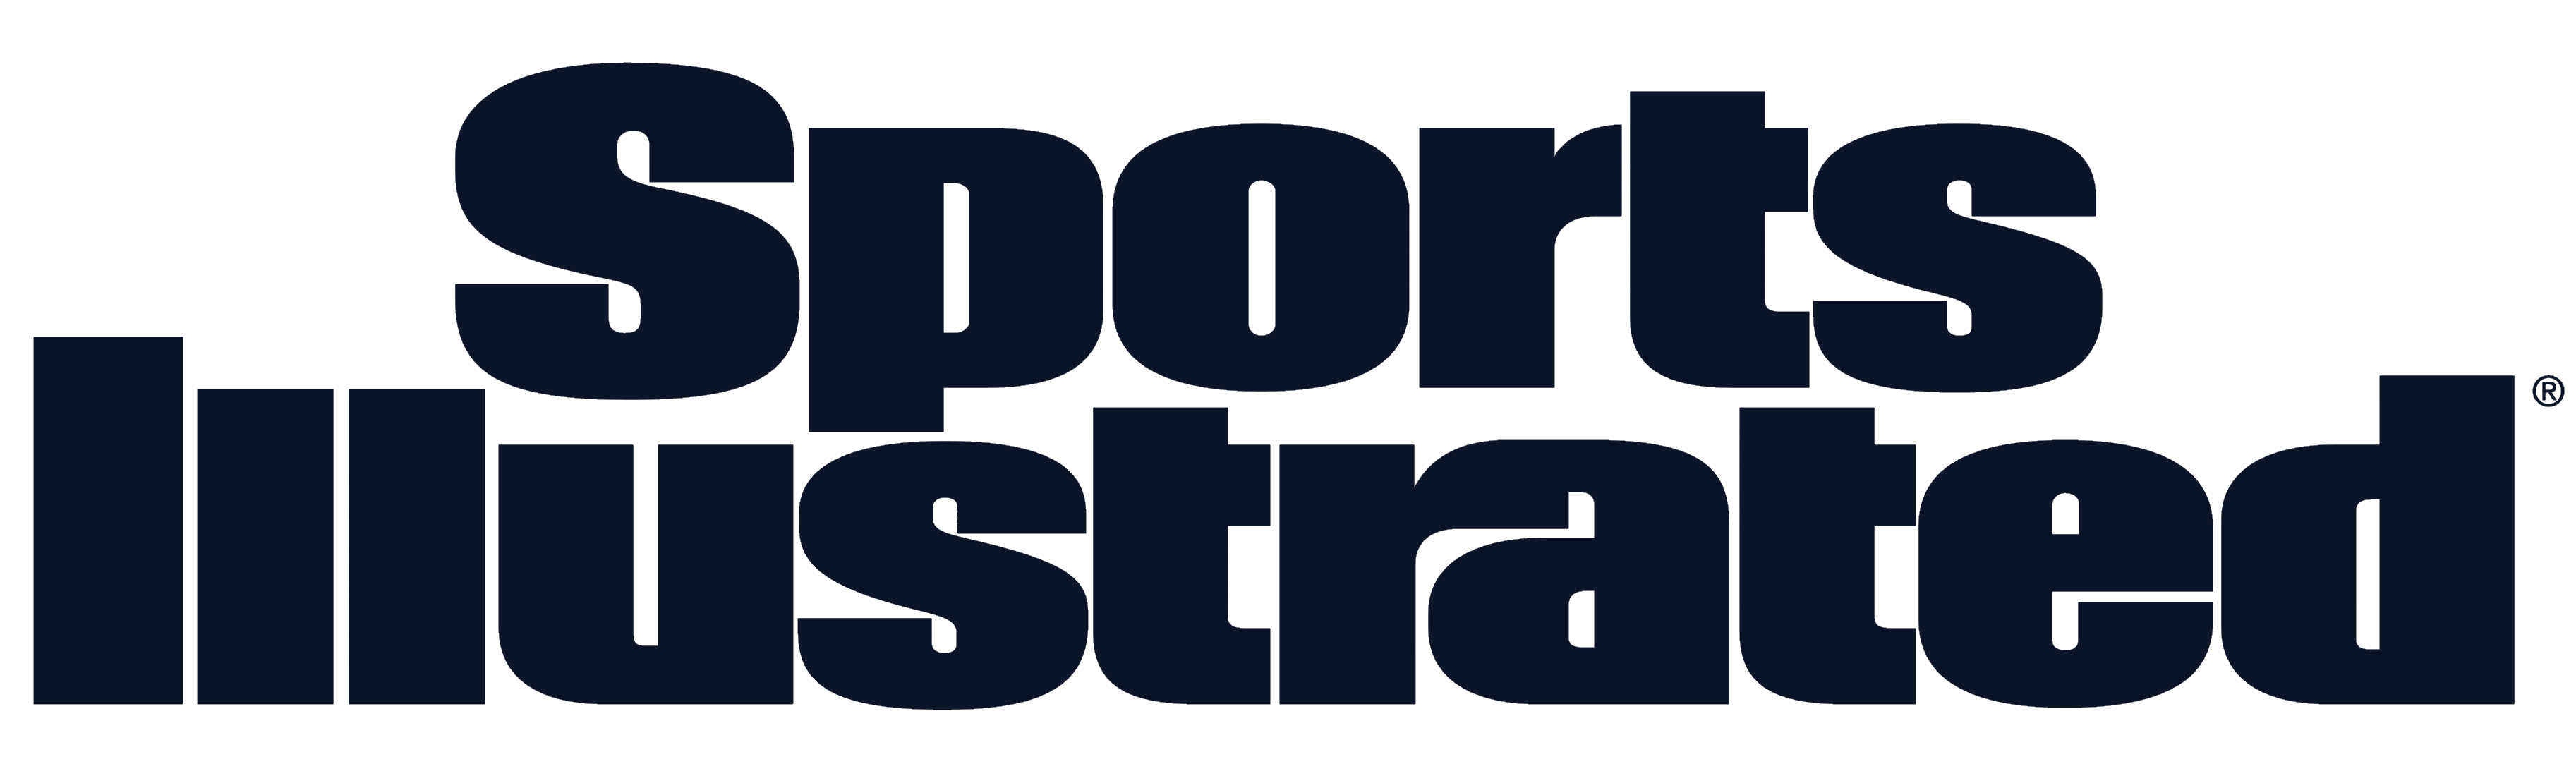 Sports illustrated logo png. Logos